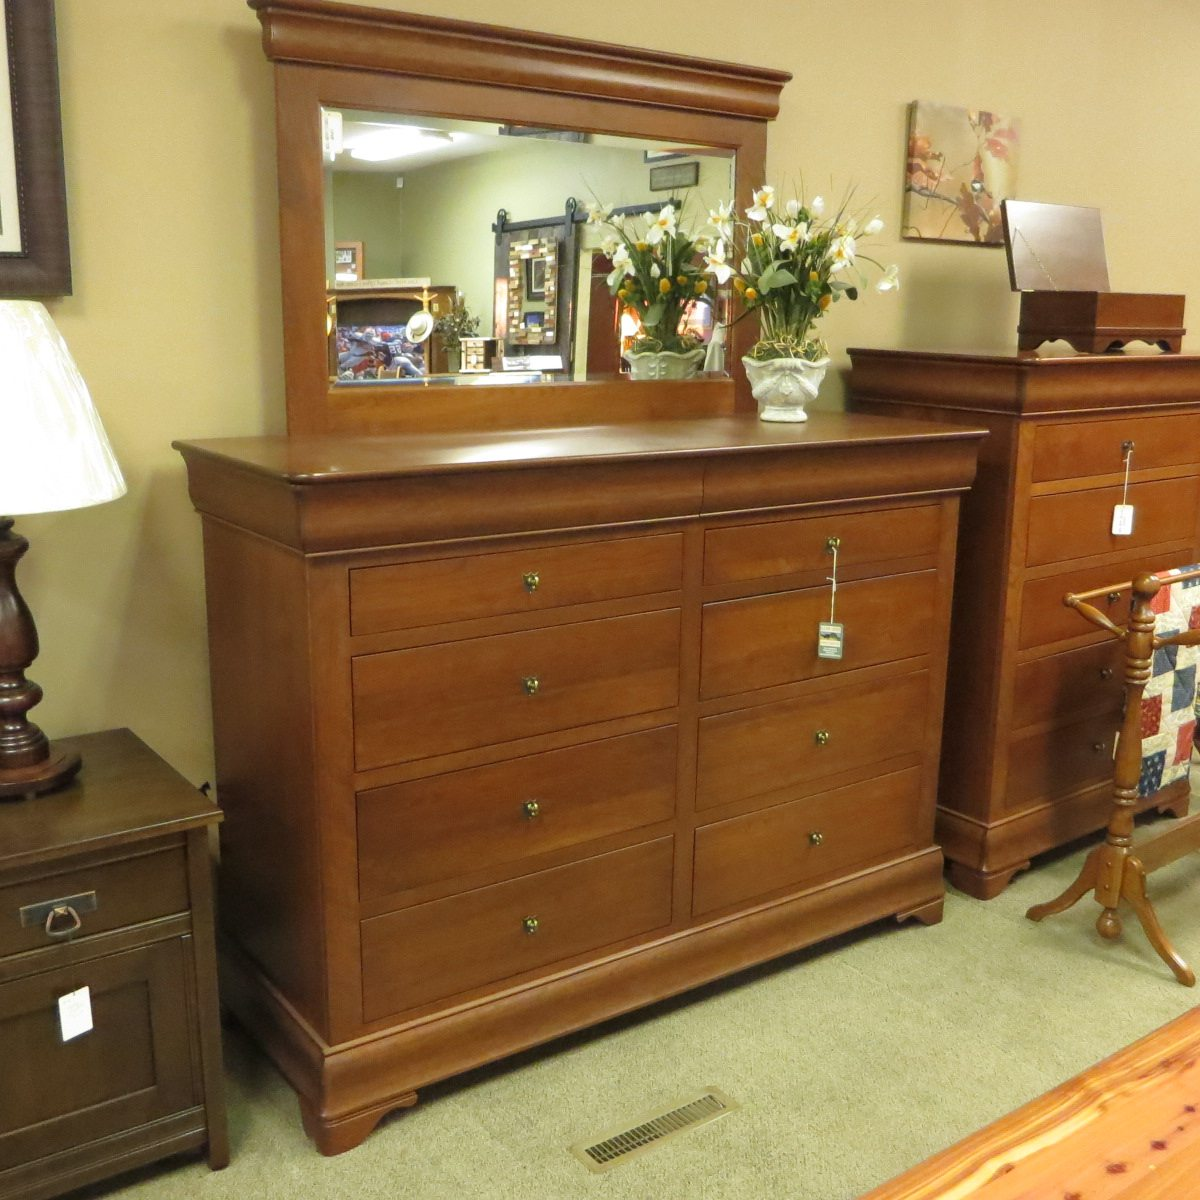 Attirant Furnish Your Bedroom With A Collection From Our Handcrafted Amish Furniture  Collections. Visit Our Ohio Amish Furniture Store East ...